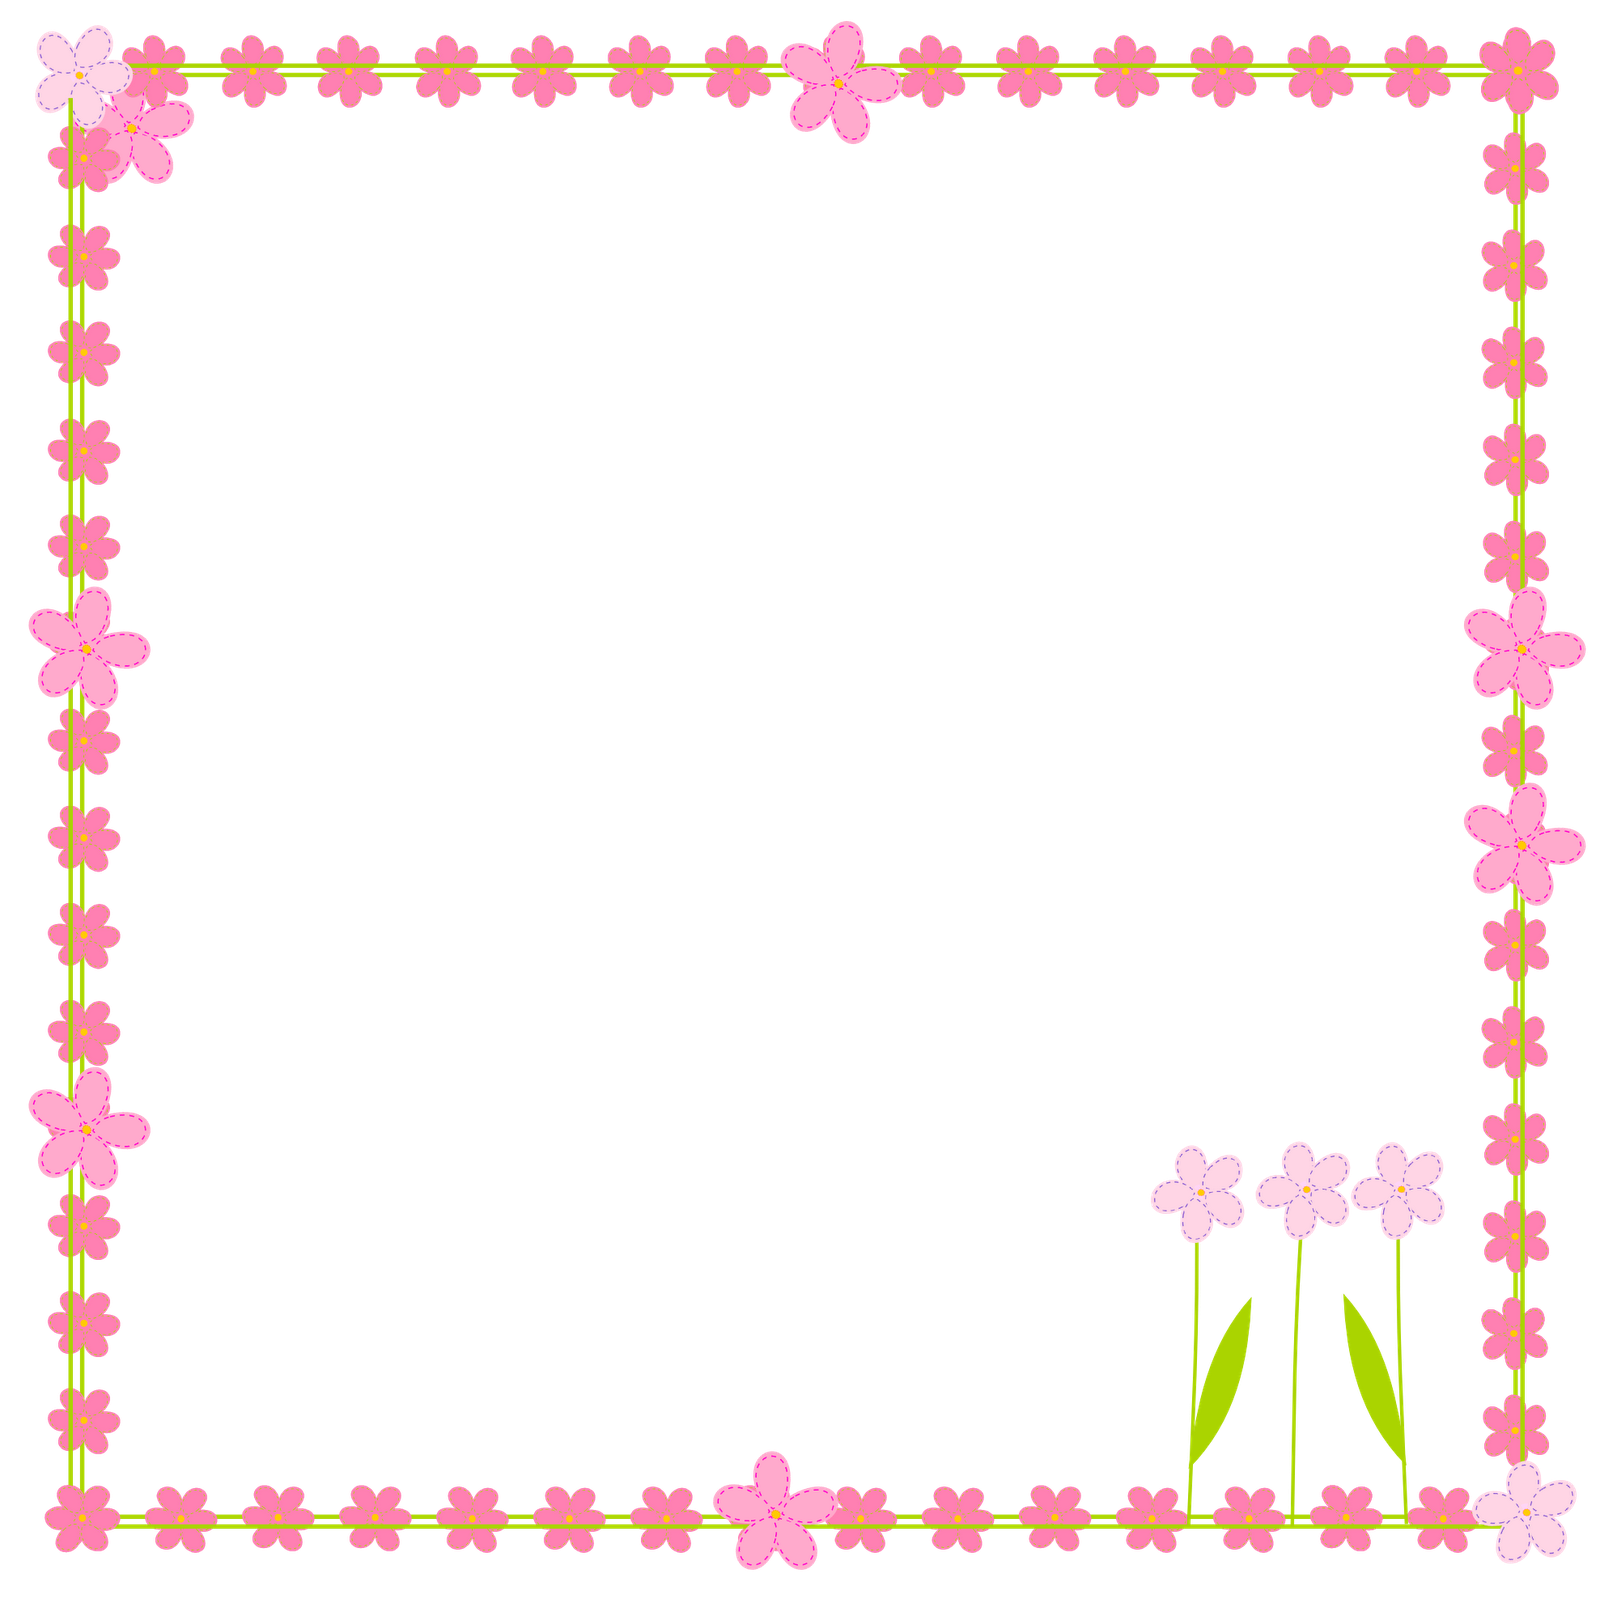 1600x1599 Flower Frame Clipart, Explore Pictures